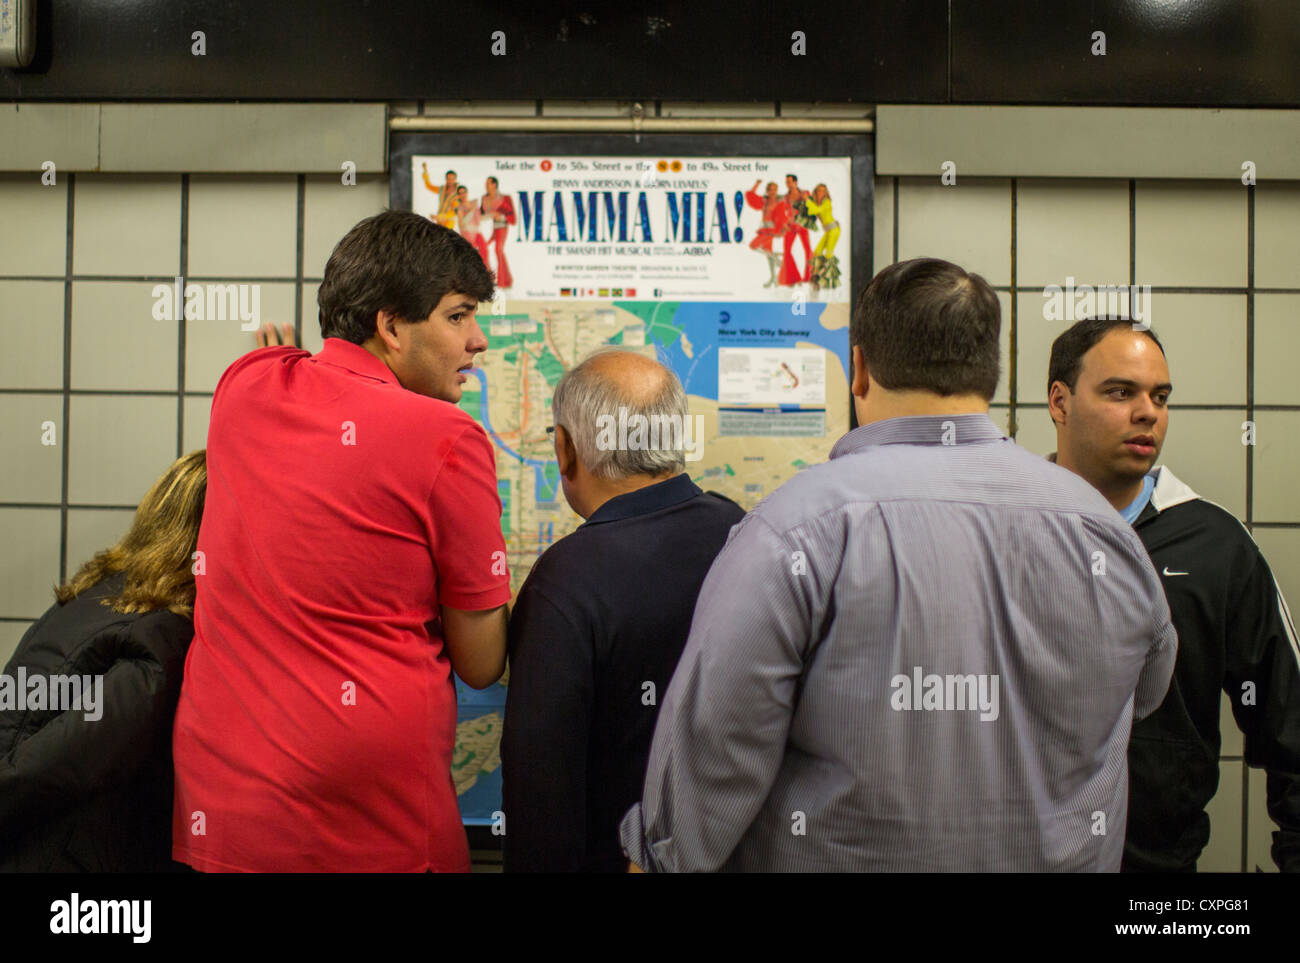 Subway Map New York Directions.Tourists Look At A New York City Subway Map For Directions Stock